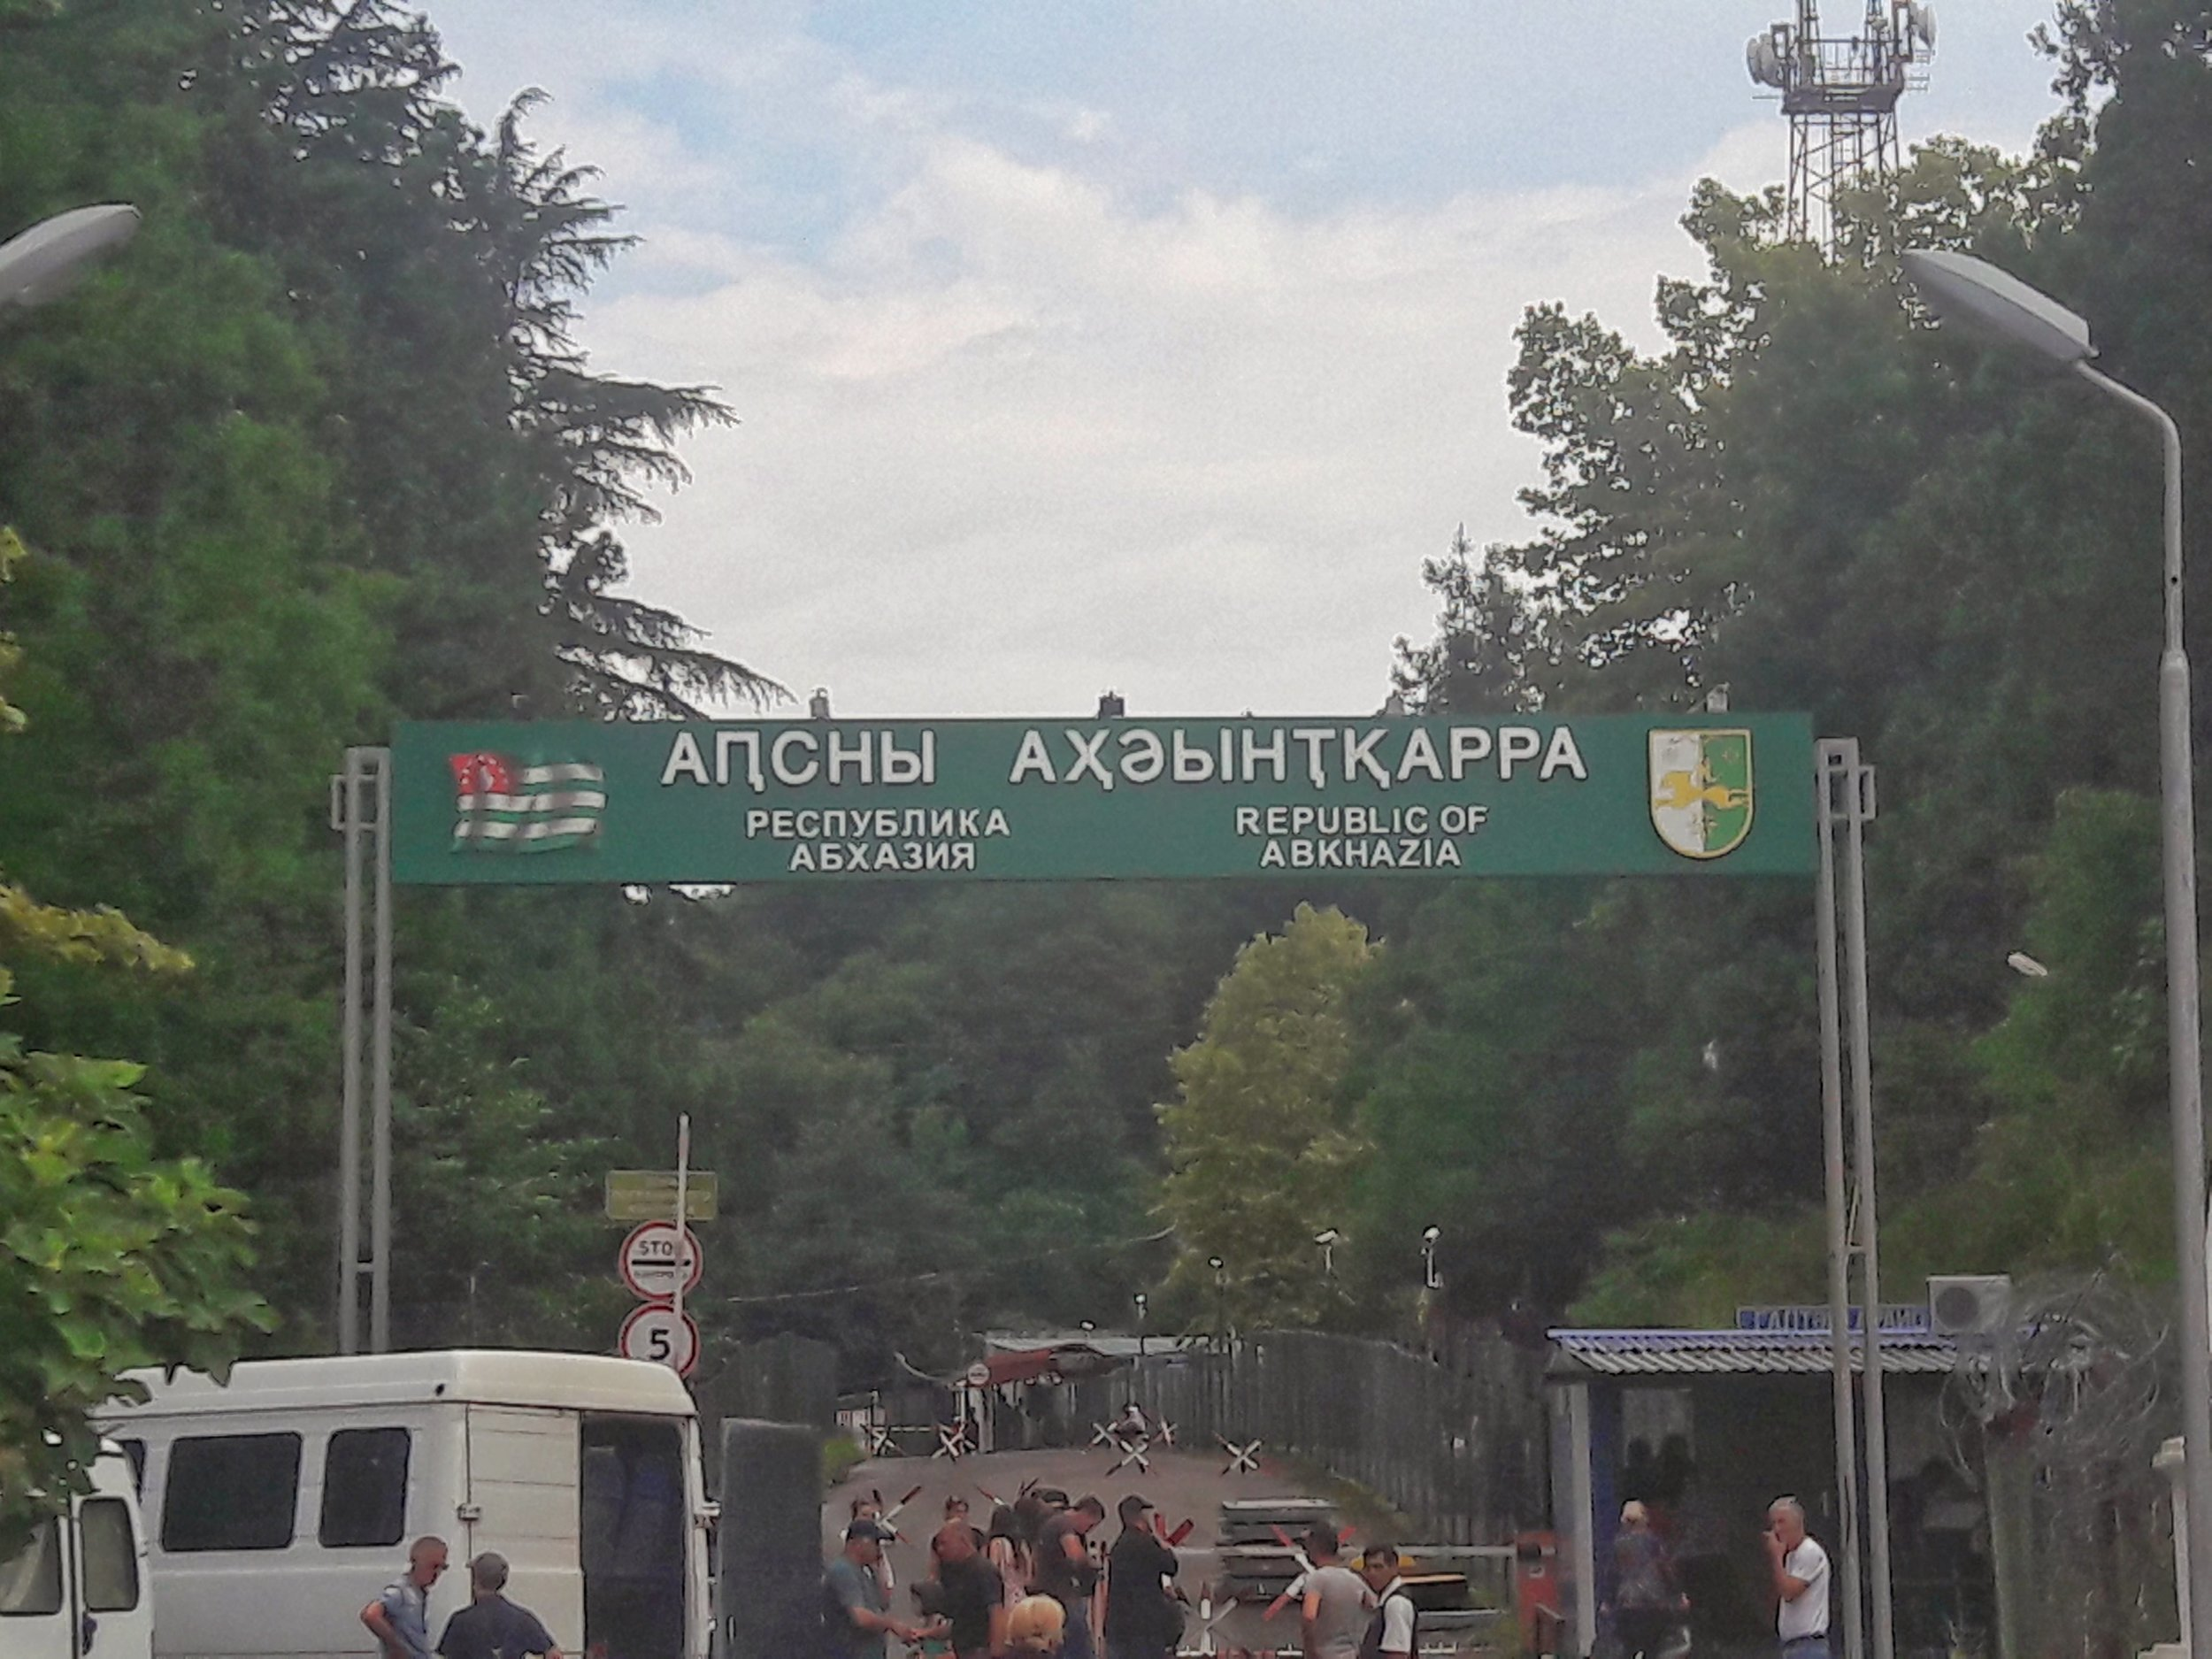 Border crossing into Abkhazia can take a bit longer but is worth the afford to travel to Abkhazia.